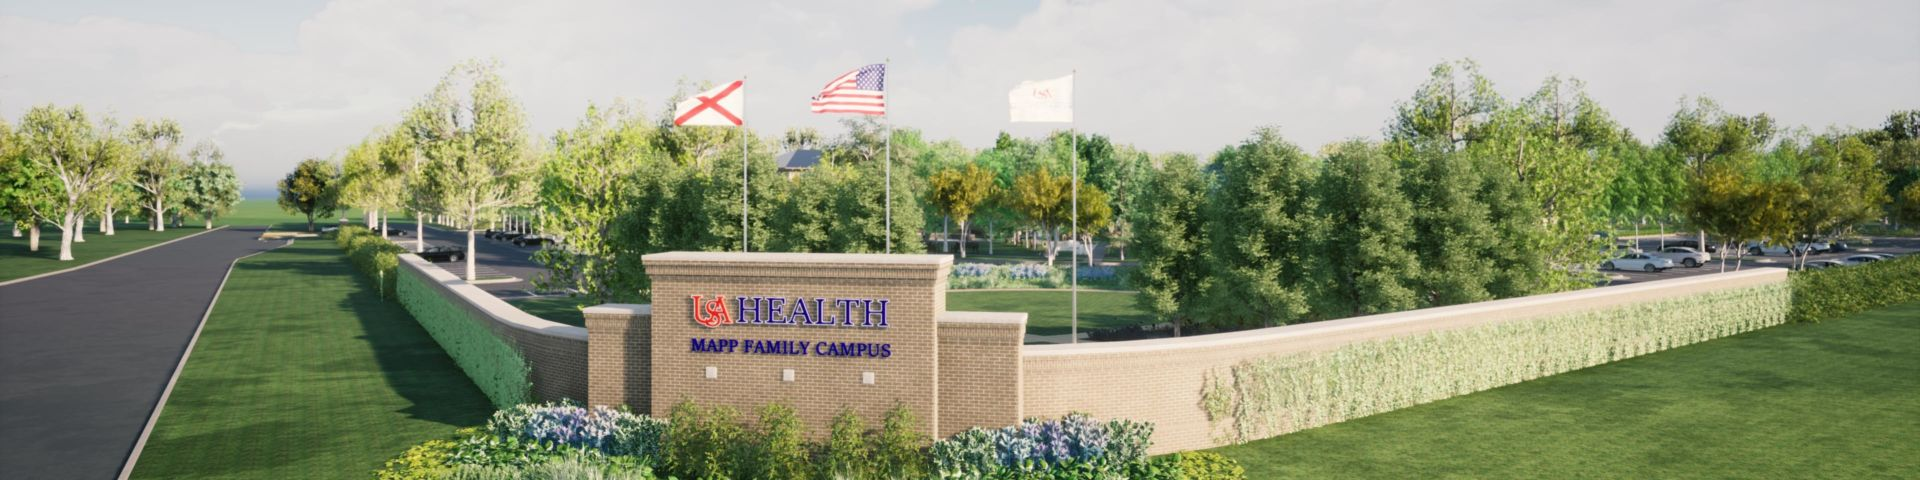 Mapp Family Campus - Front Rendering